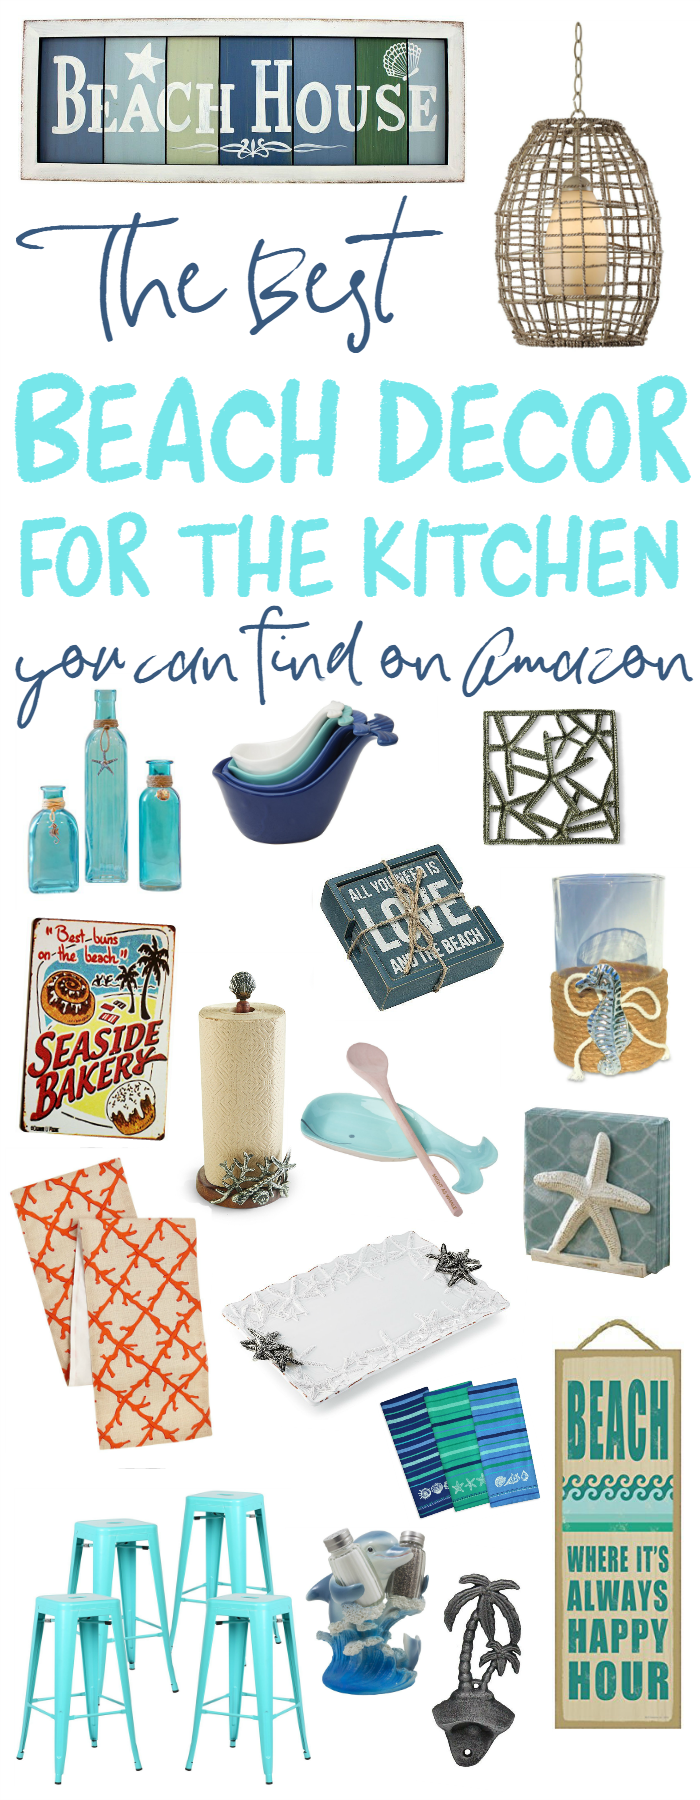 The best beach decor for the kitchen on amazon the for Beach house decor items